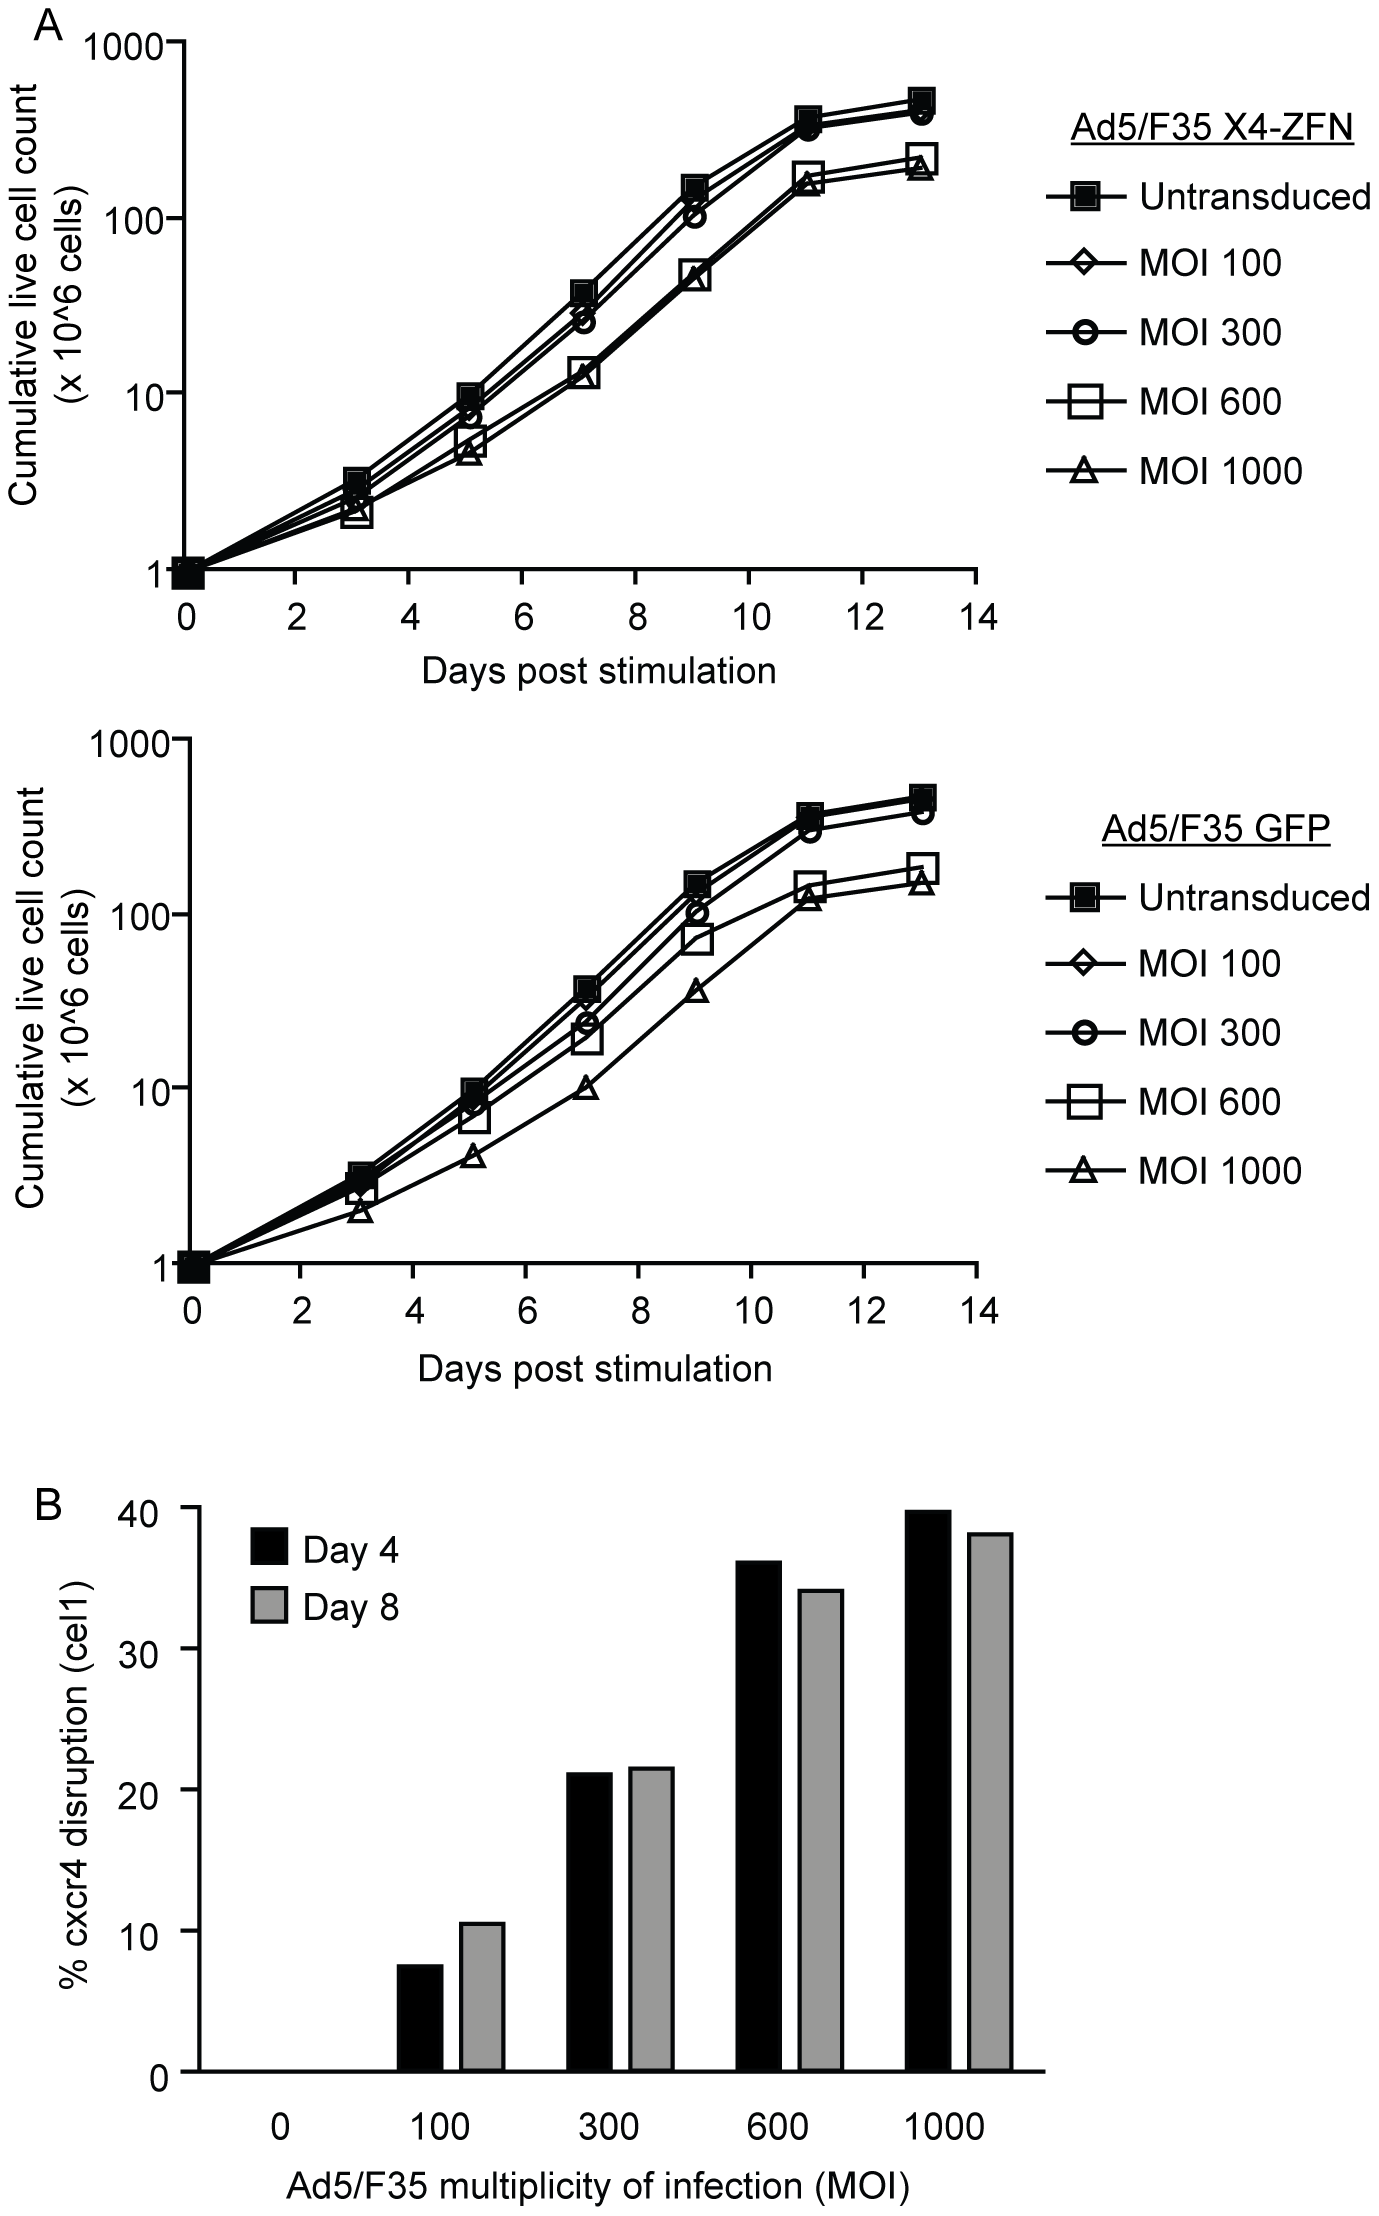 X4-ZFNs mediated disruption of <i>cxcr4</i> in primary human CD4+ T cells.